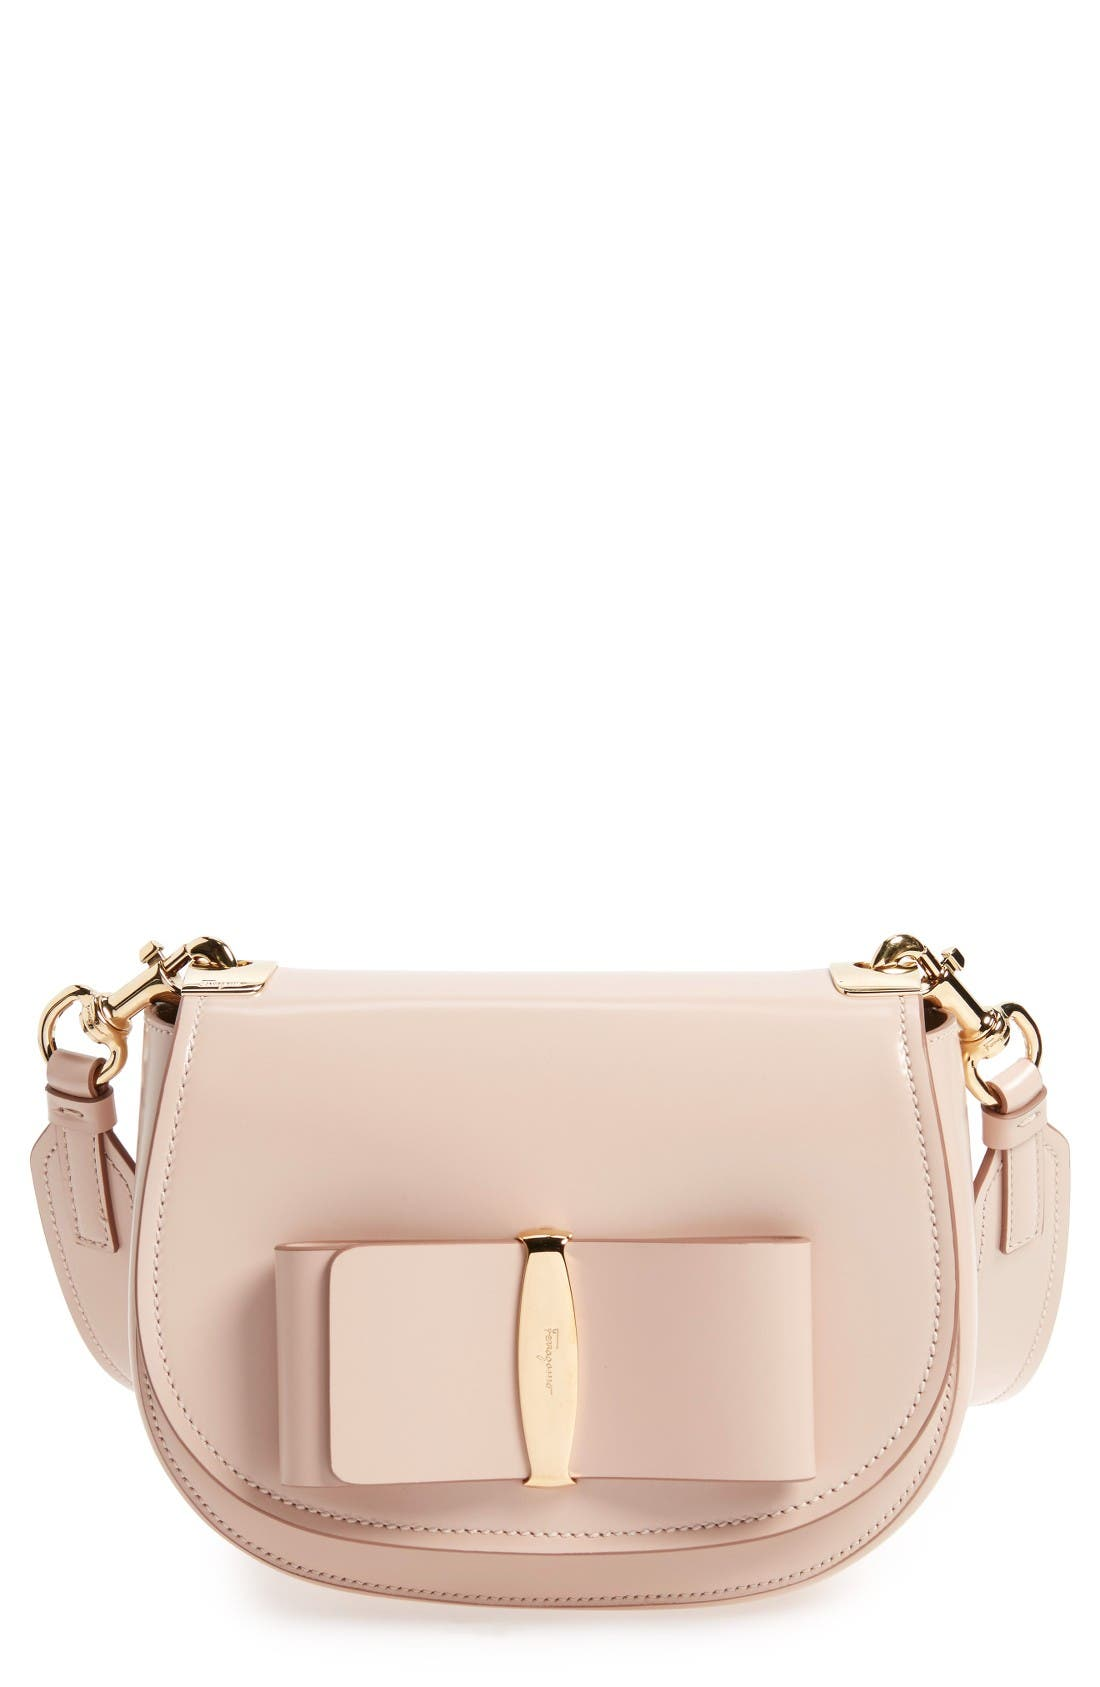 Vara Leather Crossbody Bag,                         Main,                         color, New Bisque